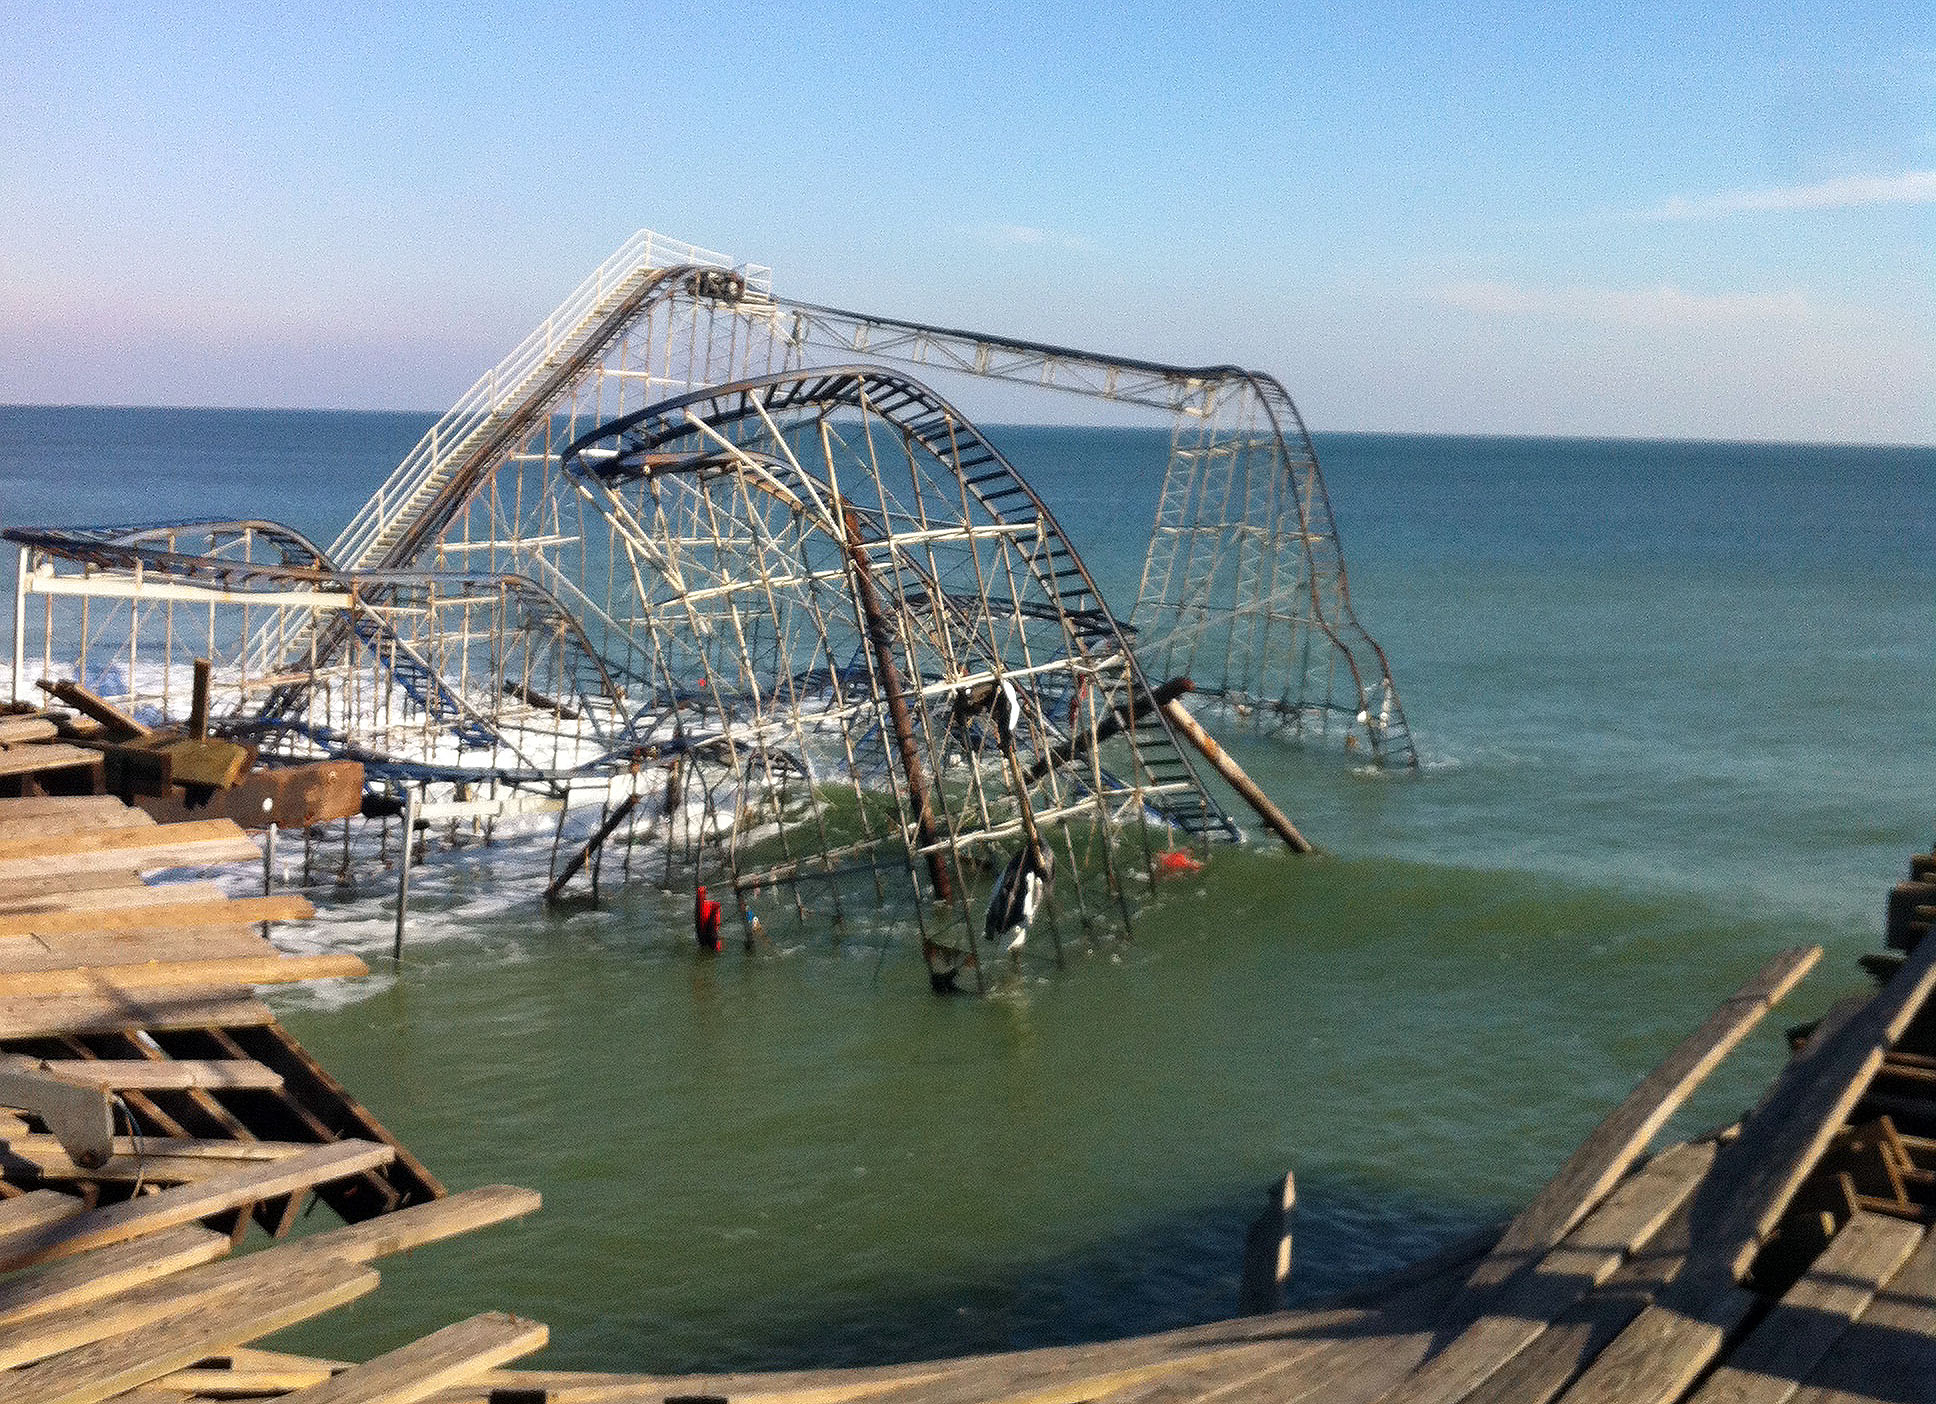 The Jet-Star roller coaster in Seaside Heights, which fell into the ocean during Superstorm Sandy. (Photo: Daniel Nee)